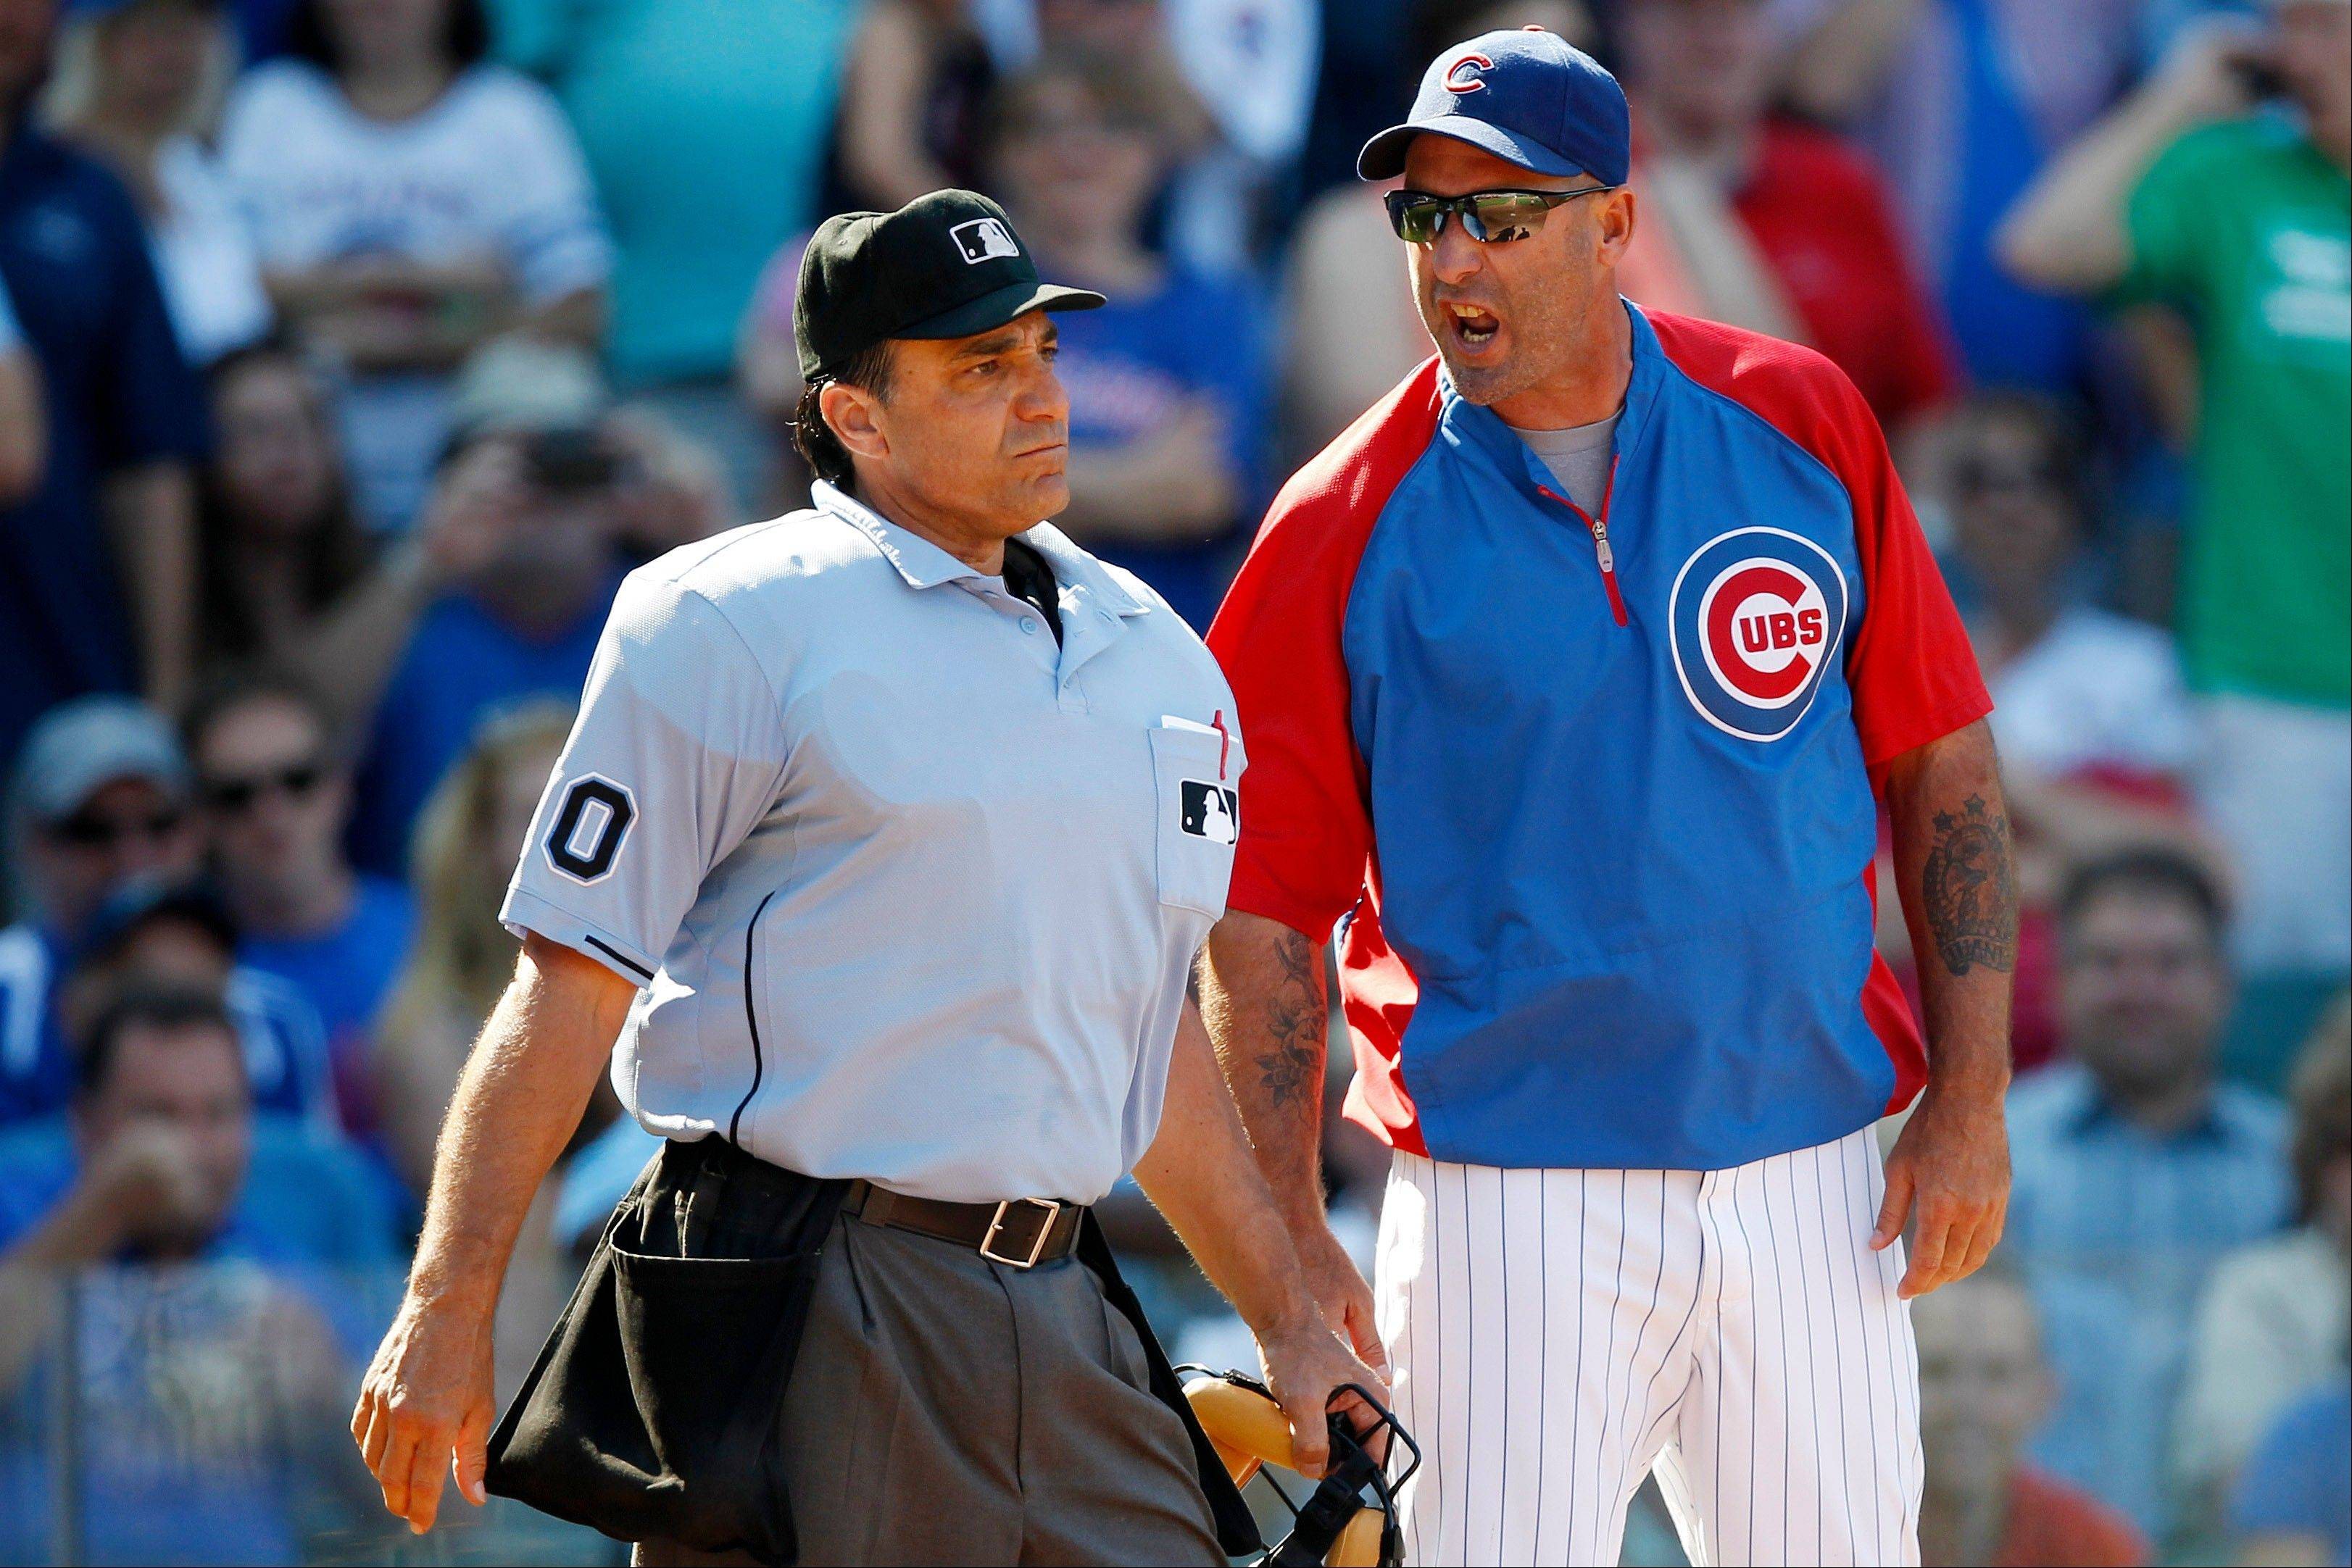 Home plate umpire Phil Cuzzi, left, and Chicago Cubs manager Dale Sveum argue after Cubs' Donnie Murphy was called out on a checked swing during the seventh inning of a baseball game against the St. Louis Cardinals, Sunday, Aug. 18, 2013, in Chicago.